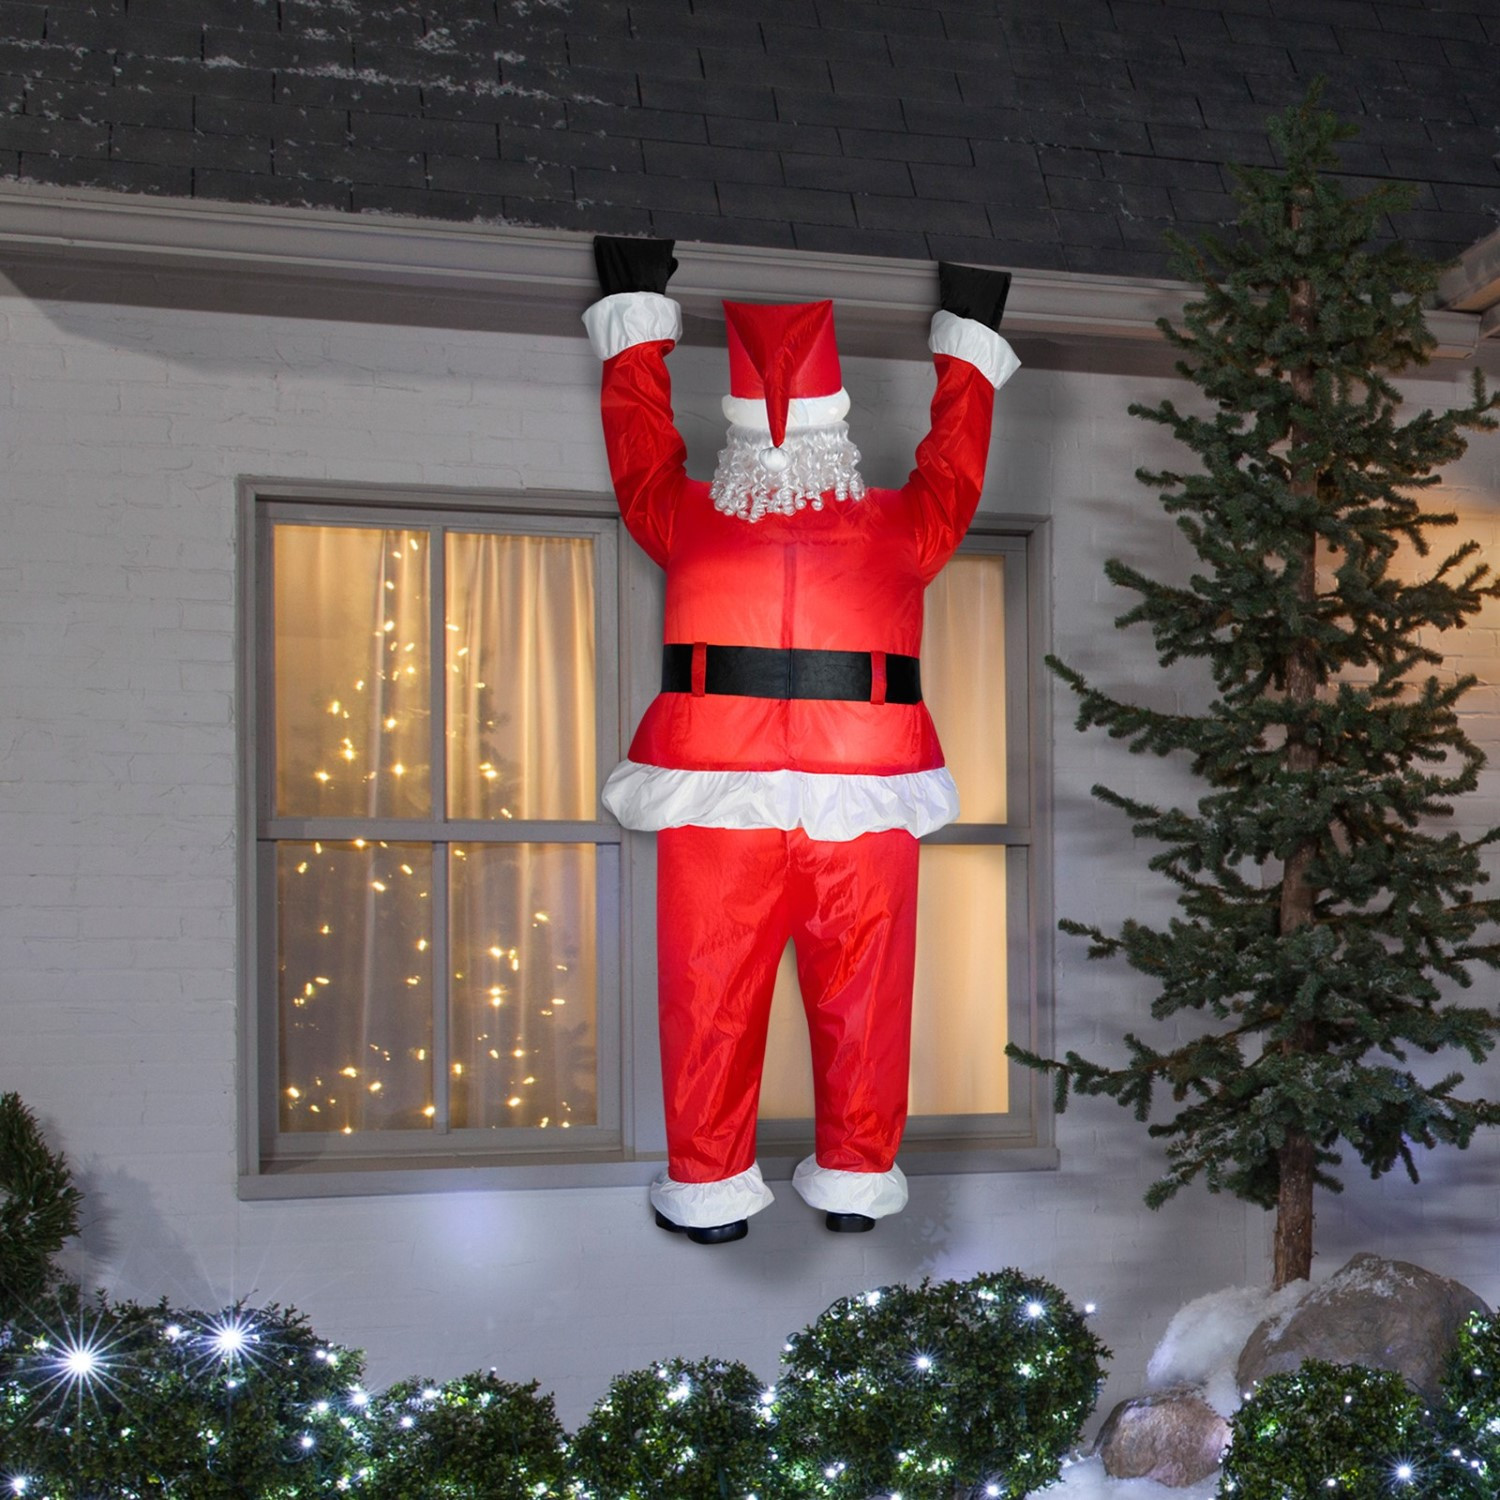 Christmas Rooftop Decorations  Santa Hanging From Roof Airblown